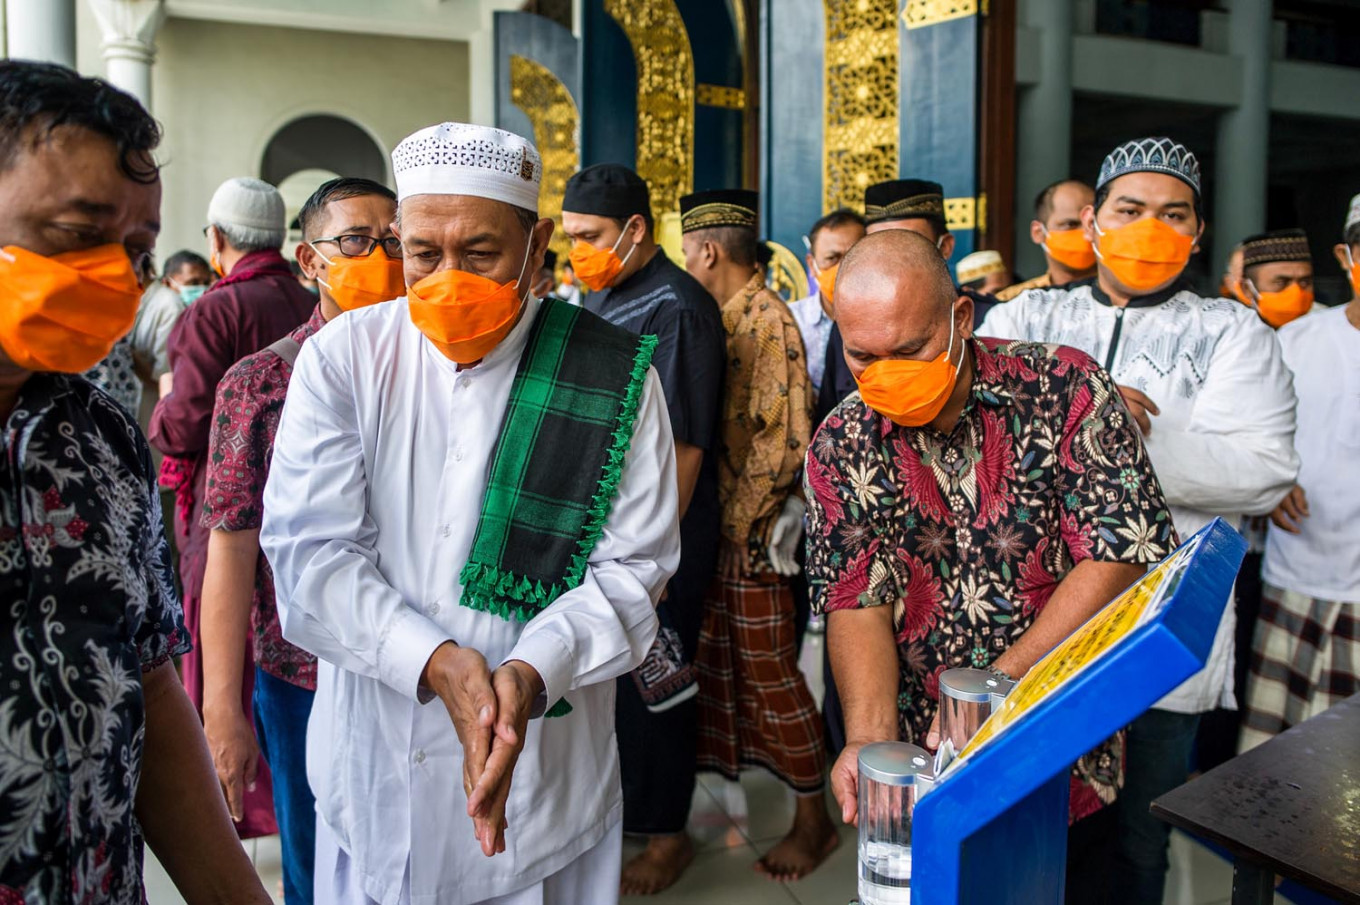 COVID-19: Muhammadiyah advises Muslims to not perform mass 'tarawih', Idul Fitri prayers